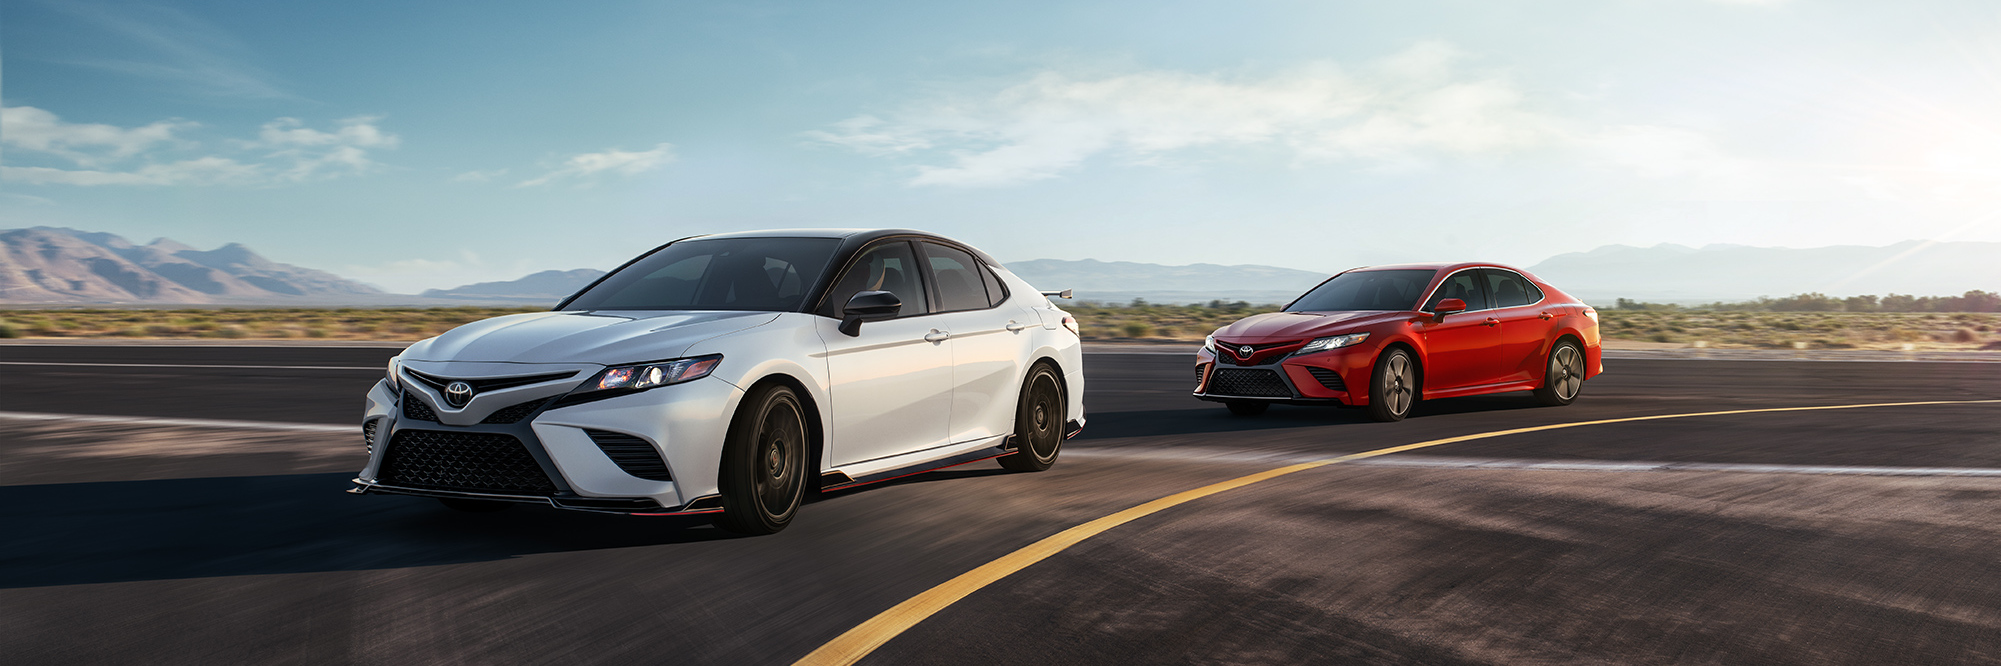 Model Features of the 2020 Toyota Camry at Tri County Toyota | White and red 2020 Camry Running on road